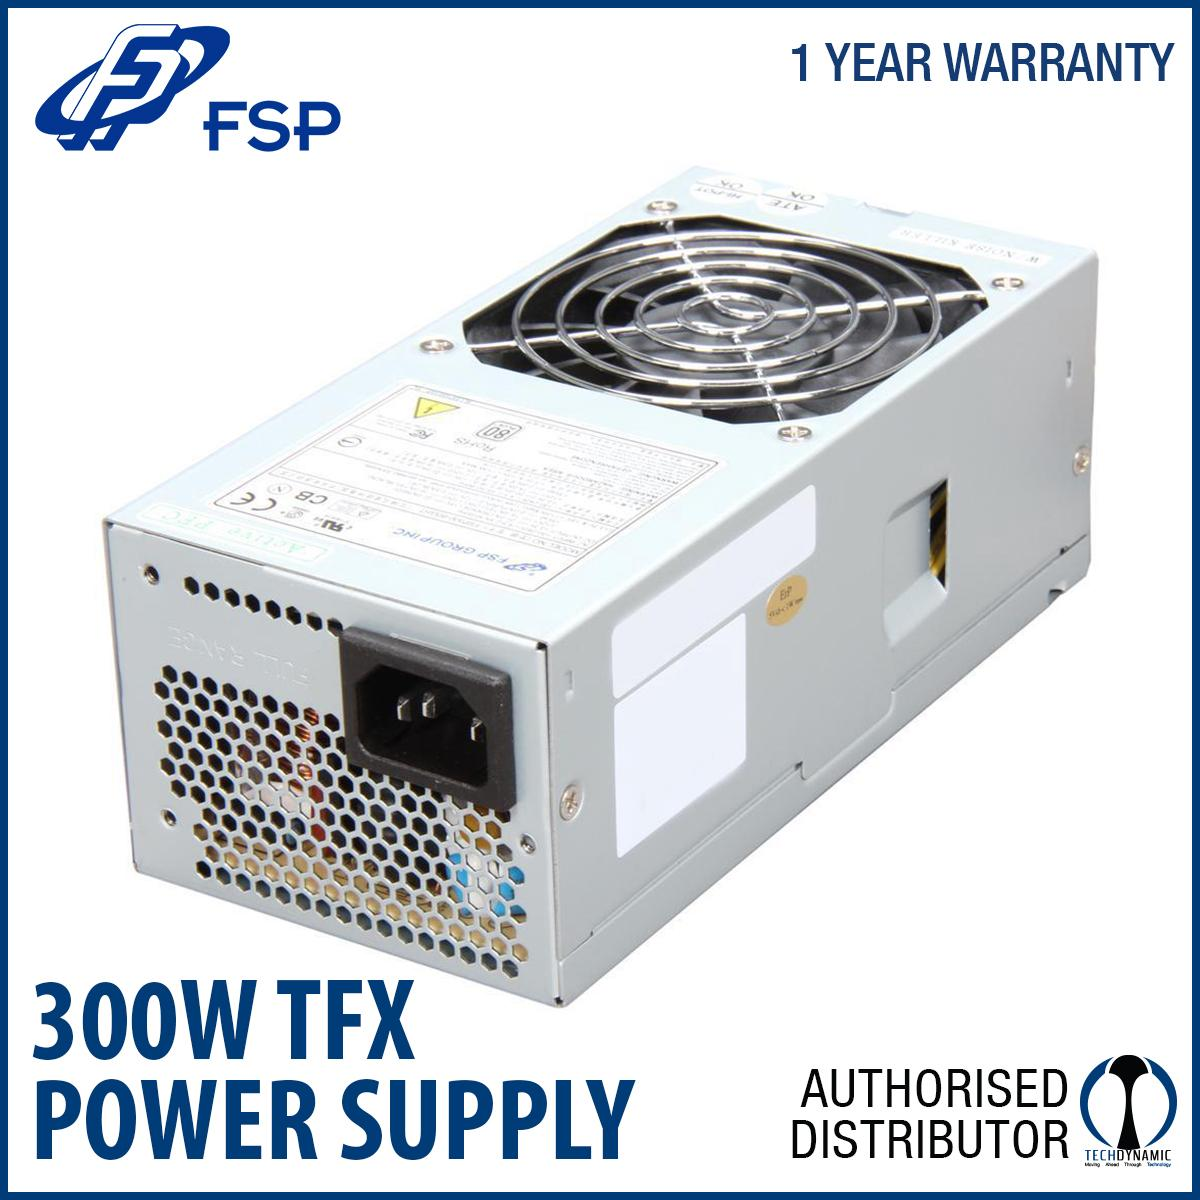 Sale Fsp 300W Tfx Power Supply 80 Bronze Fsp Online